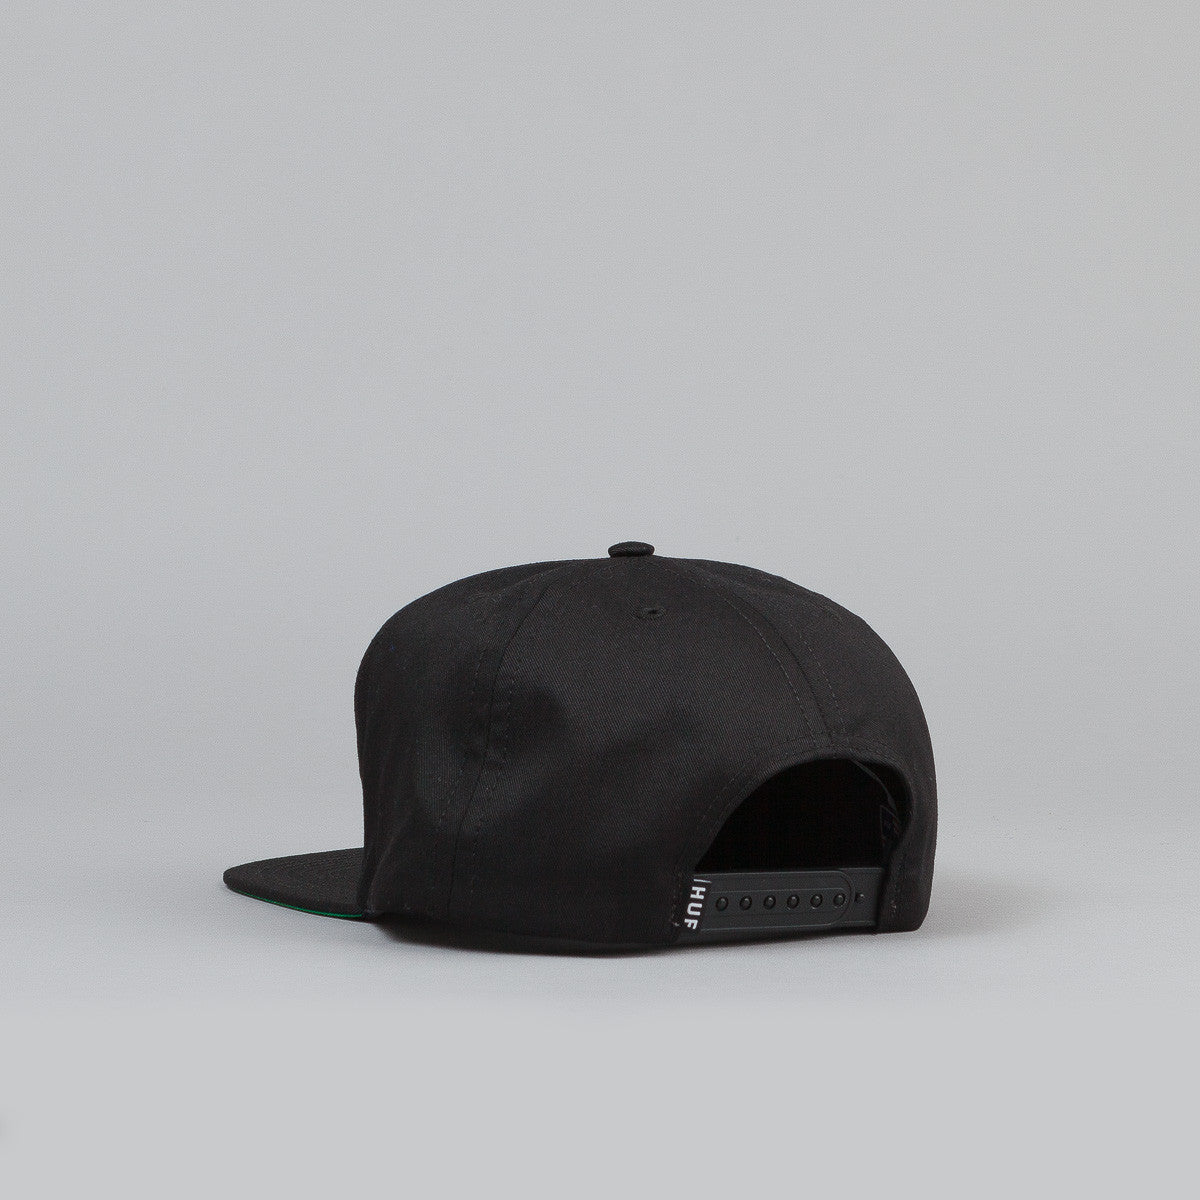 HUF X Stay High 149 Snapback Cap - Black